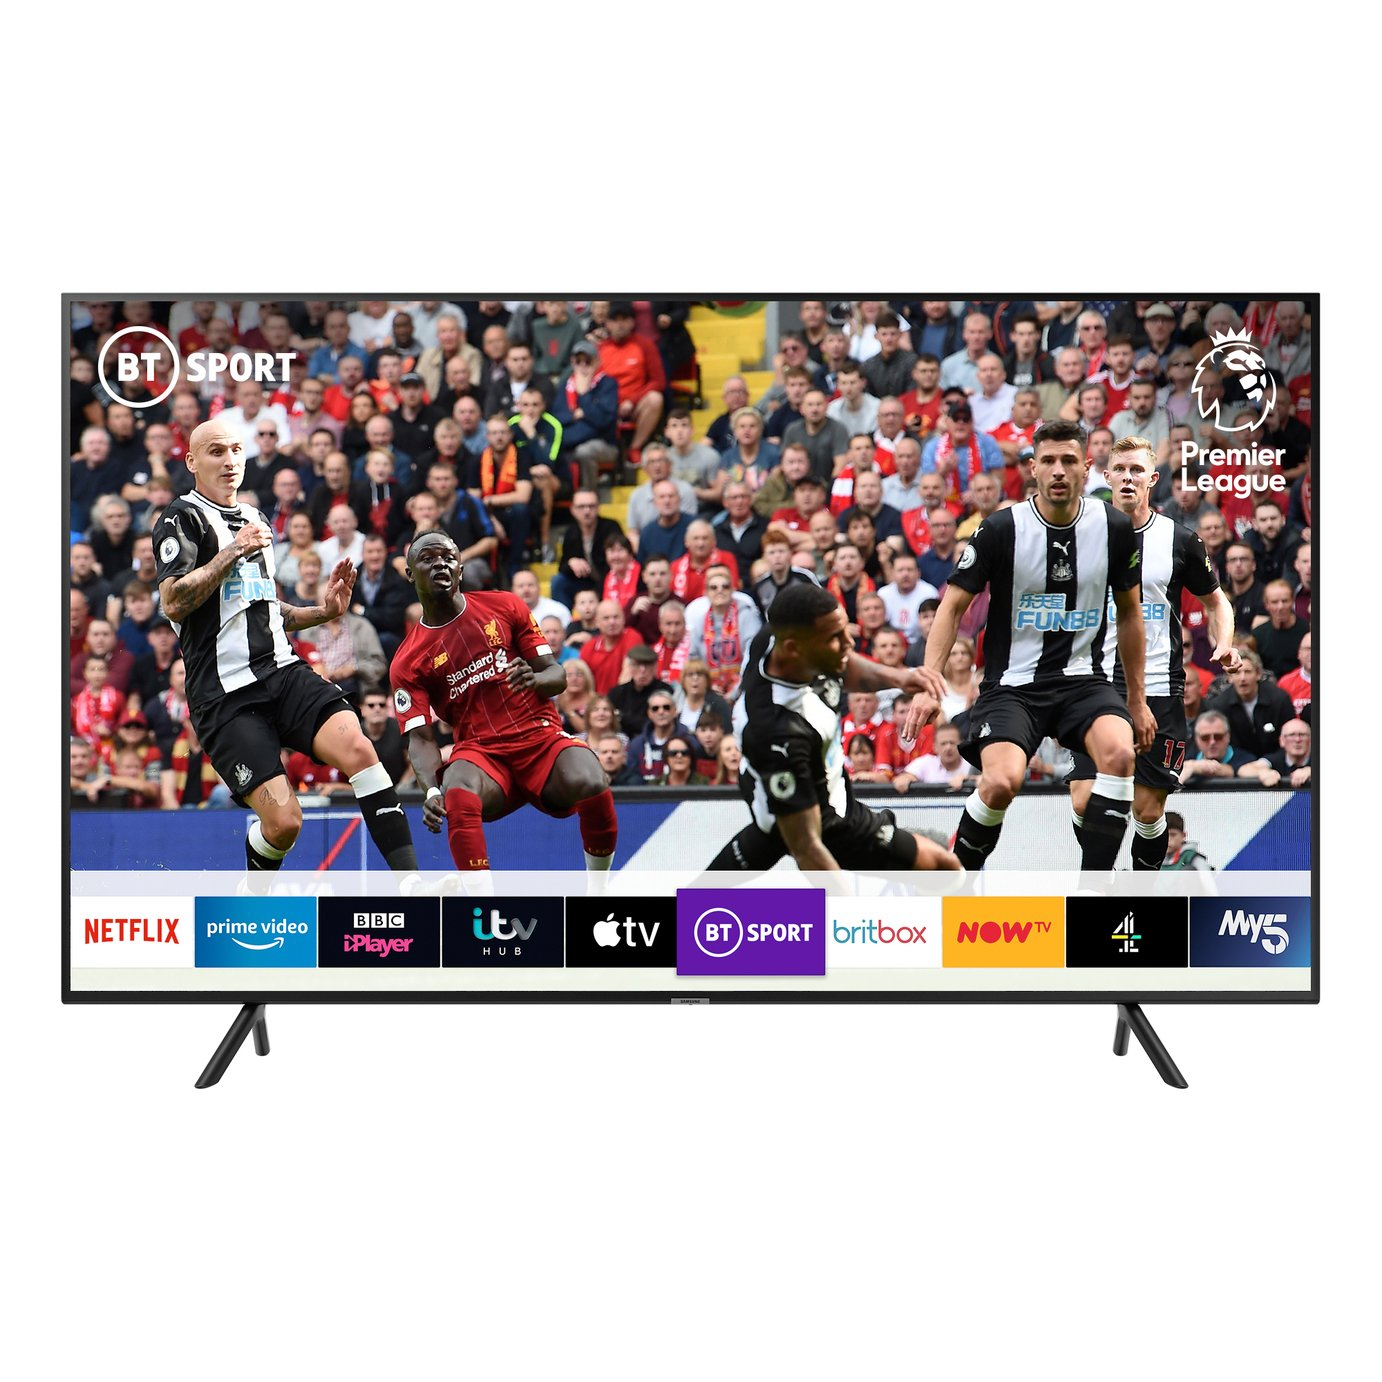 Samsung 75 Inch UE75RU7020 4K HDR LED TV